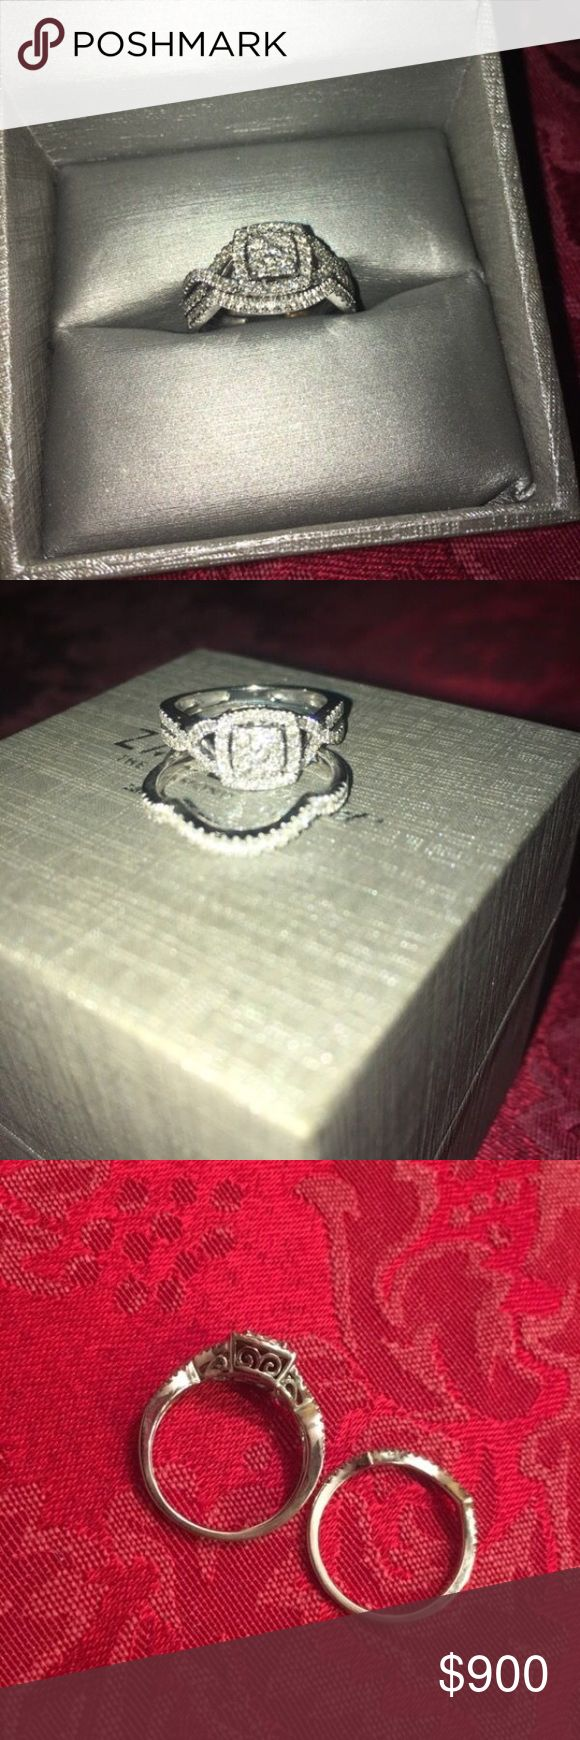 ENGAGEMENT RING & WEDDING BAND SET Size 7, white gold, from Zales, asking $900 or best offer Zales Jewelry Rings